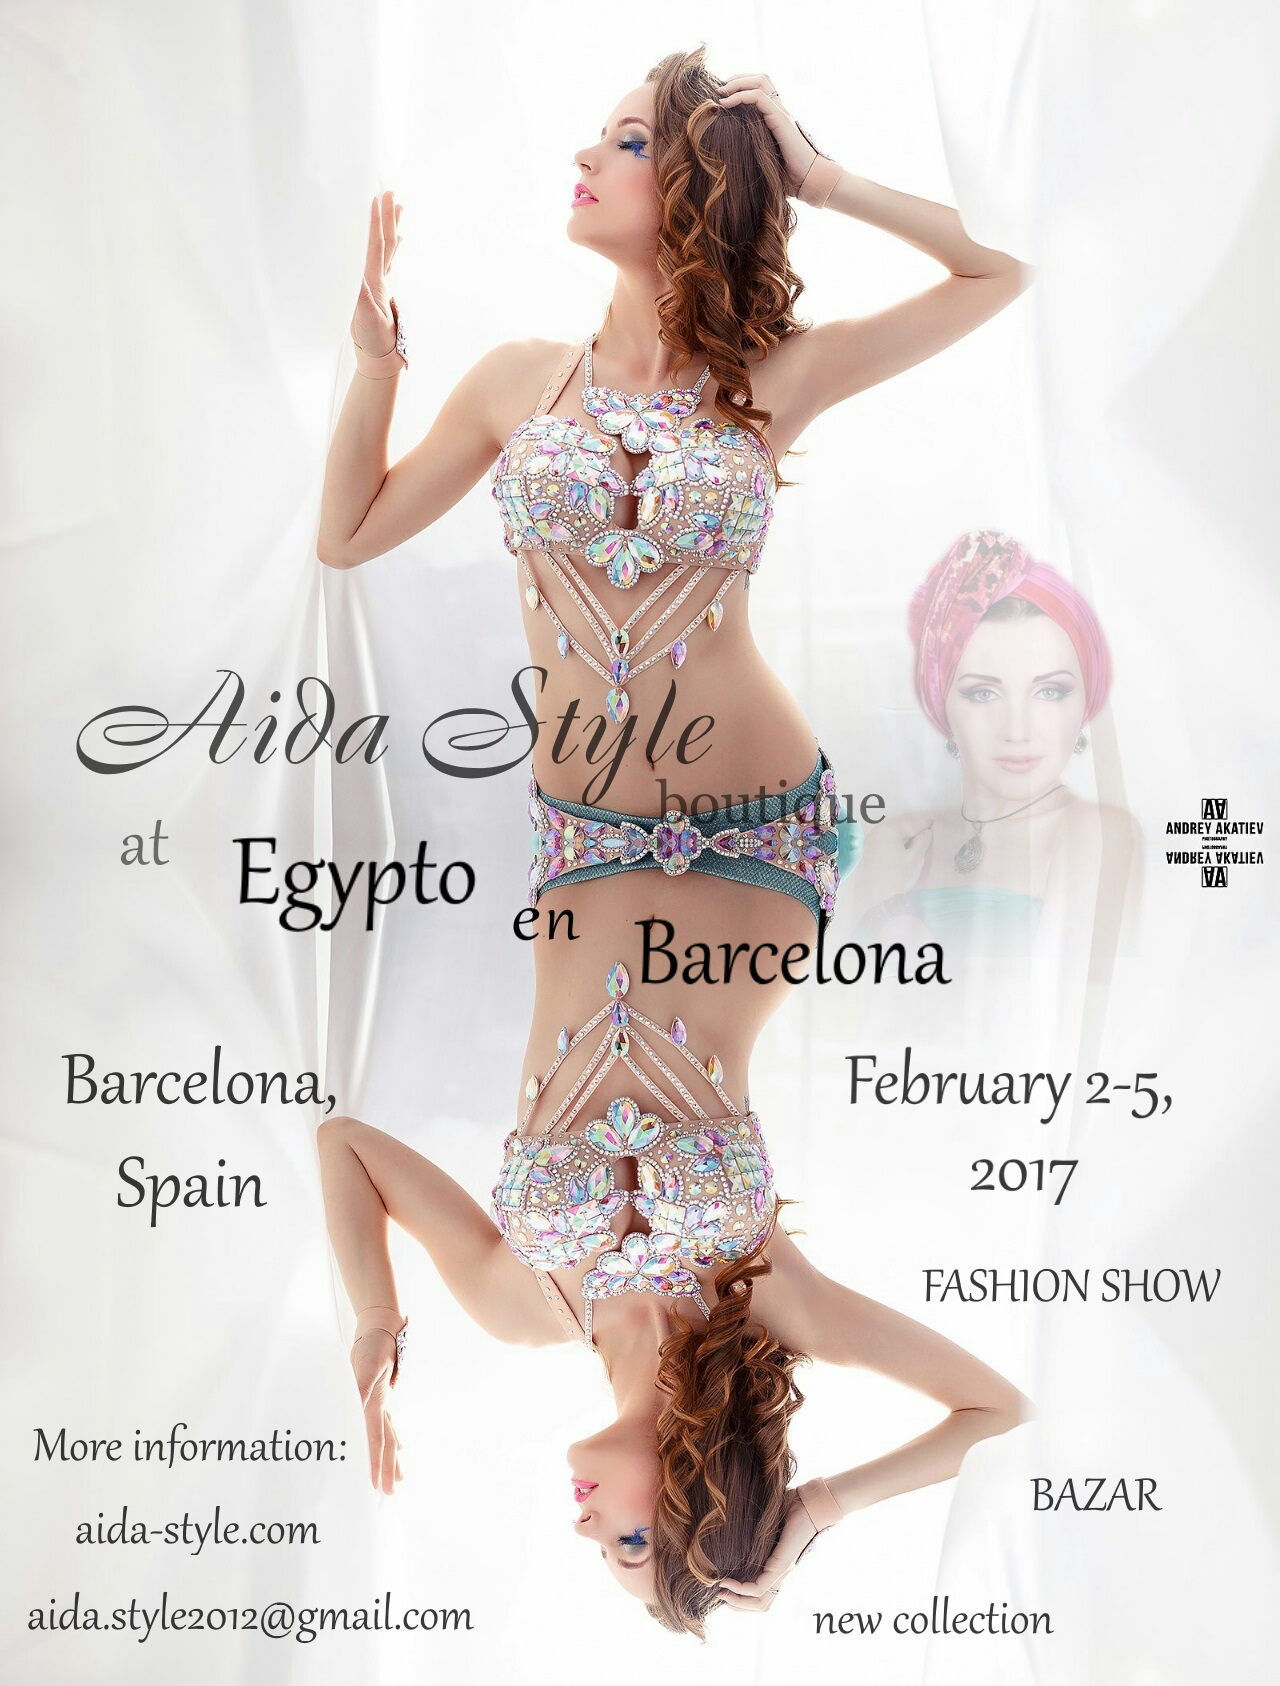 Aida Style costumes in Barcelona, at Egypto in Barcelona, Munique Neith belly dance festival